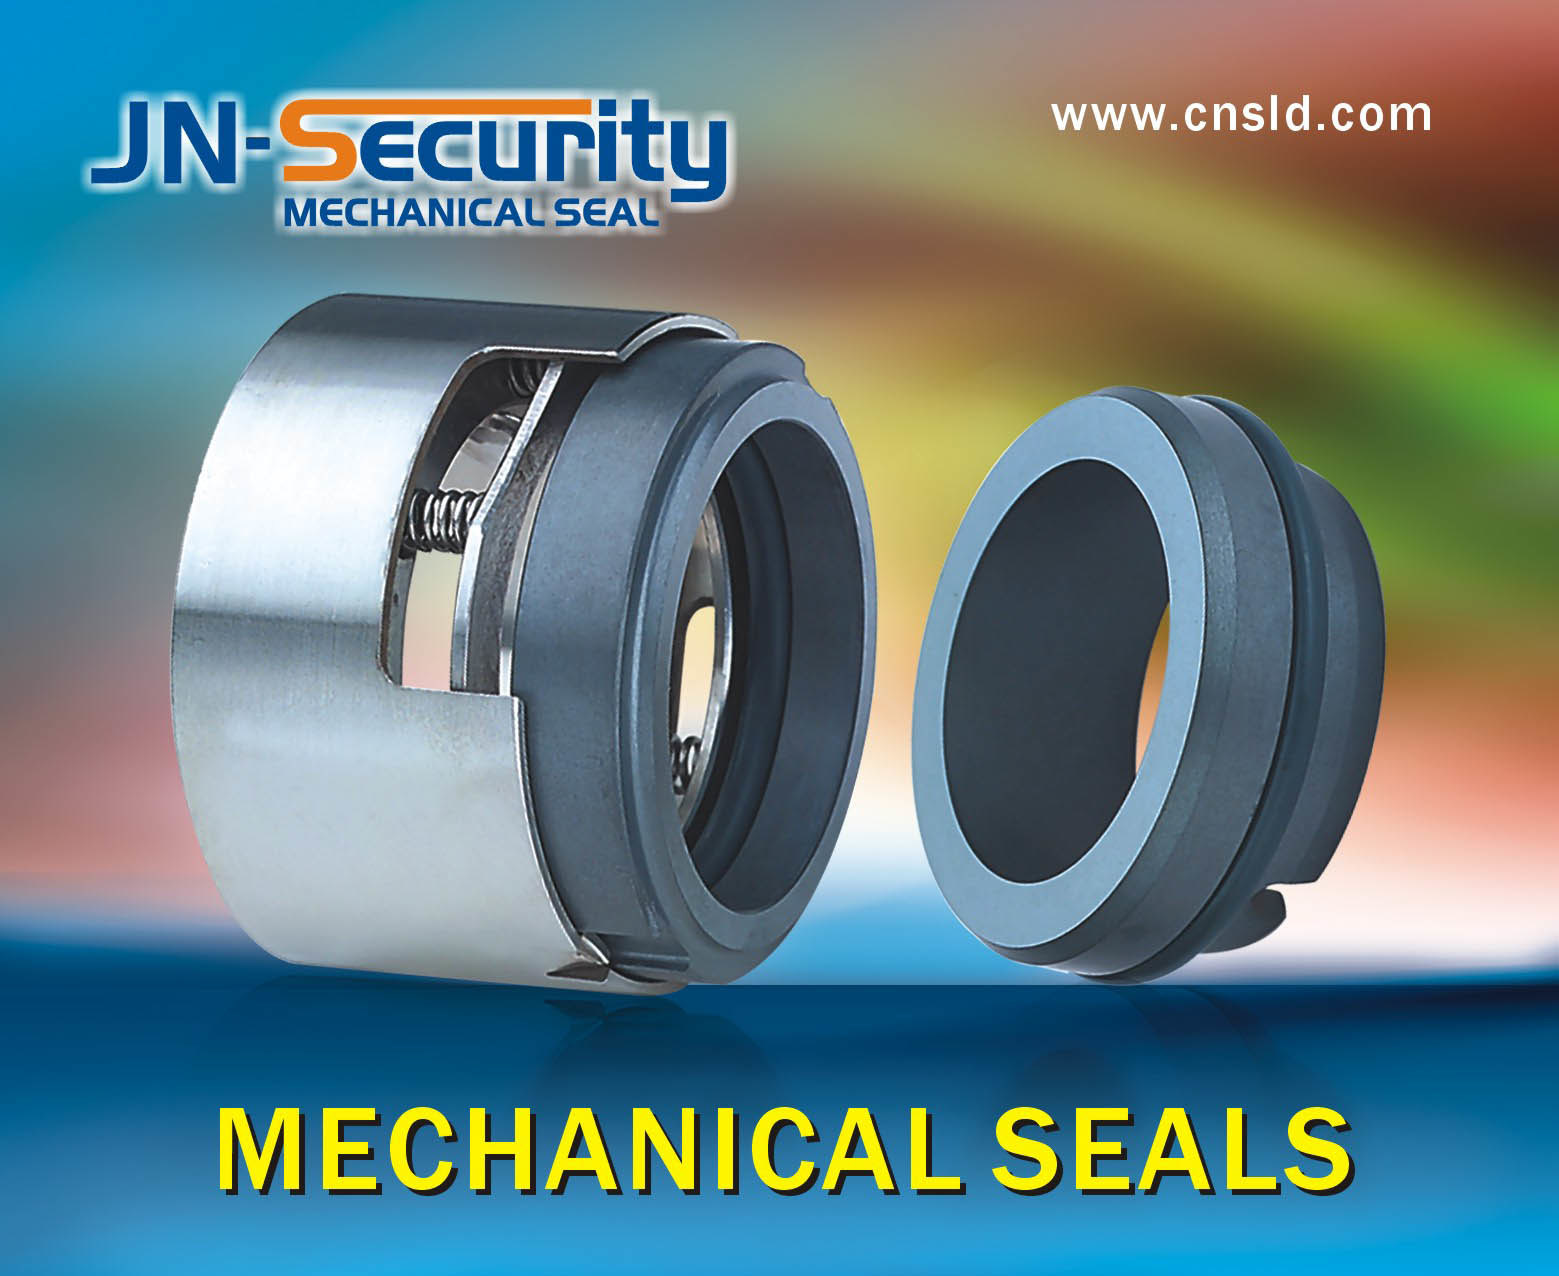 Series Mechanical Seals for Pump and Auto